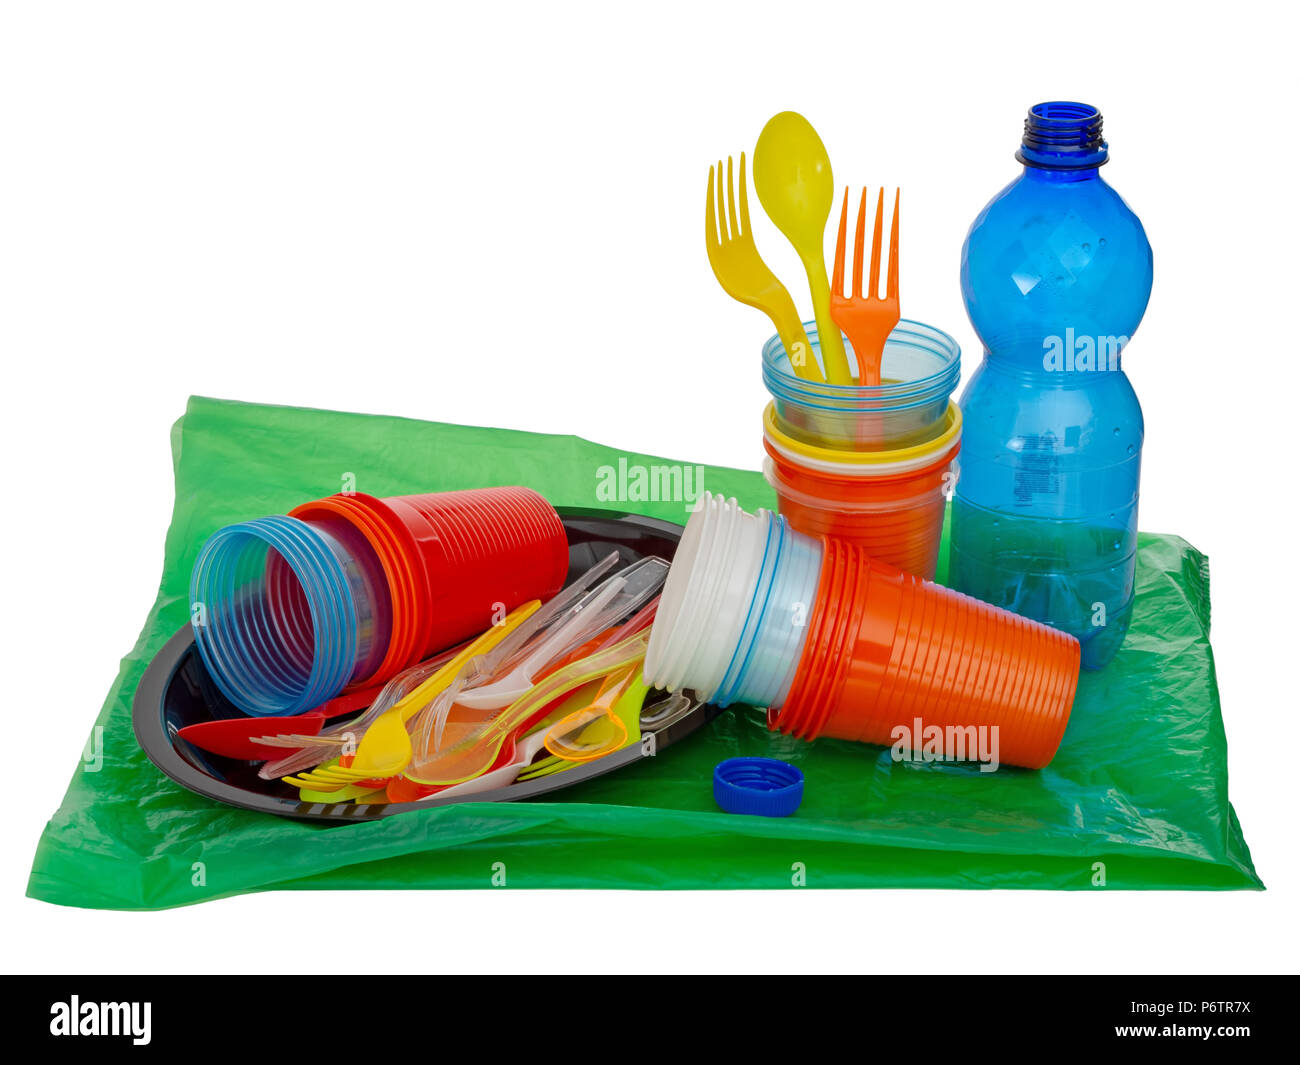 Single use, disposable plastic including cutlery, evironmental problem, EU directive. Isolated on white. - Stock Image